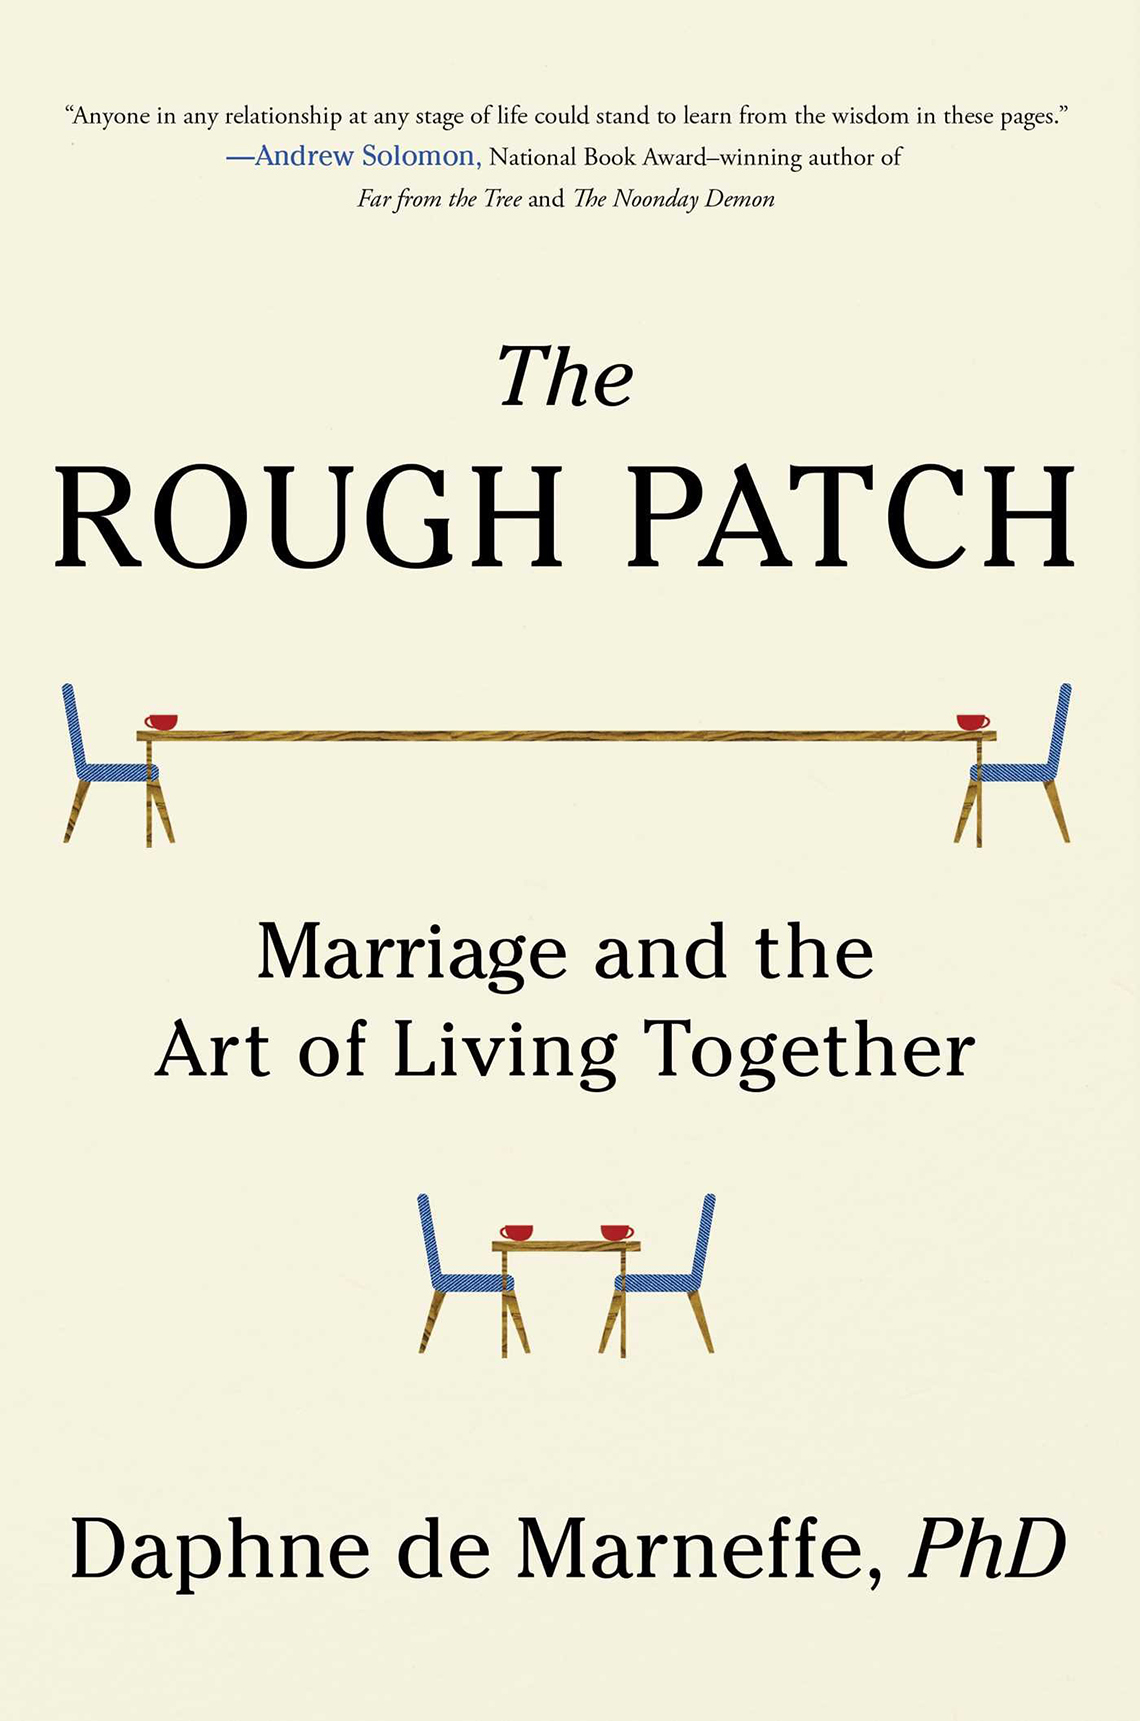 Book cover of The Rough Patch by Daphne de Marneffe. Simple illustration of a long table with two chairs and a short table with two chairs